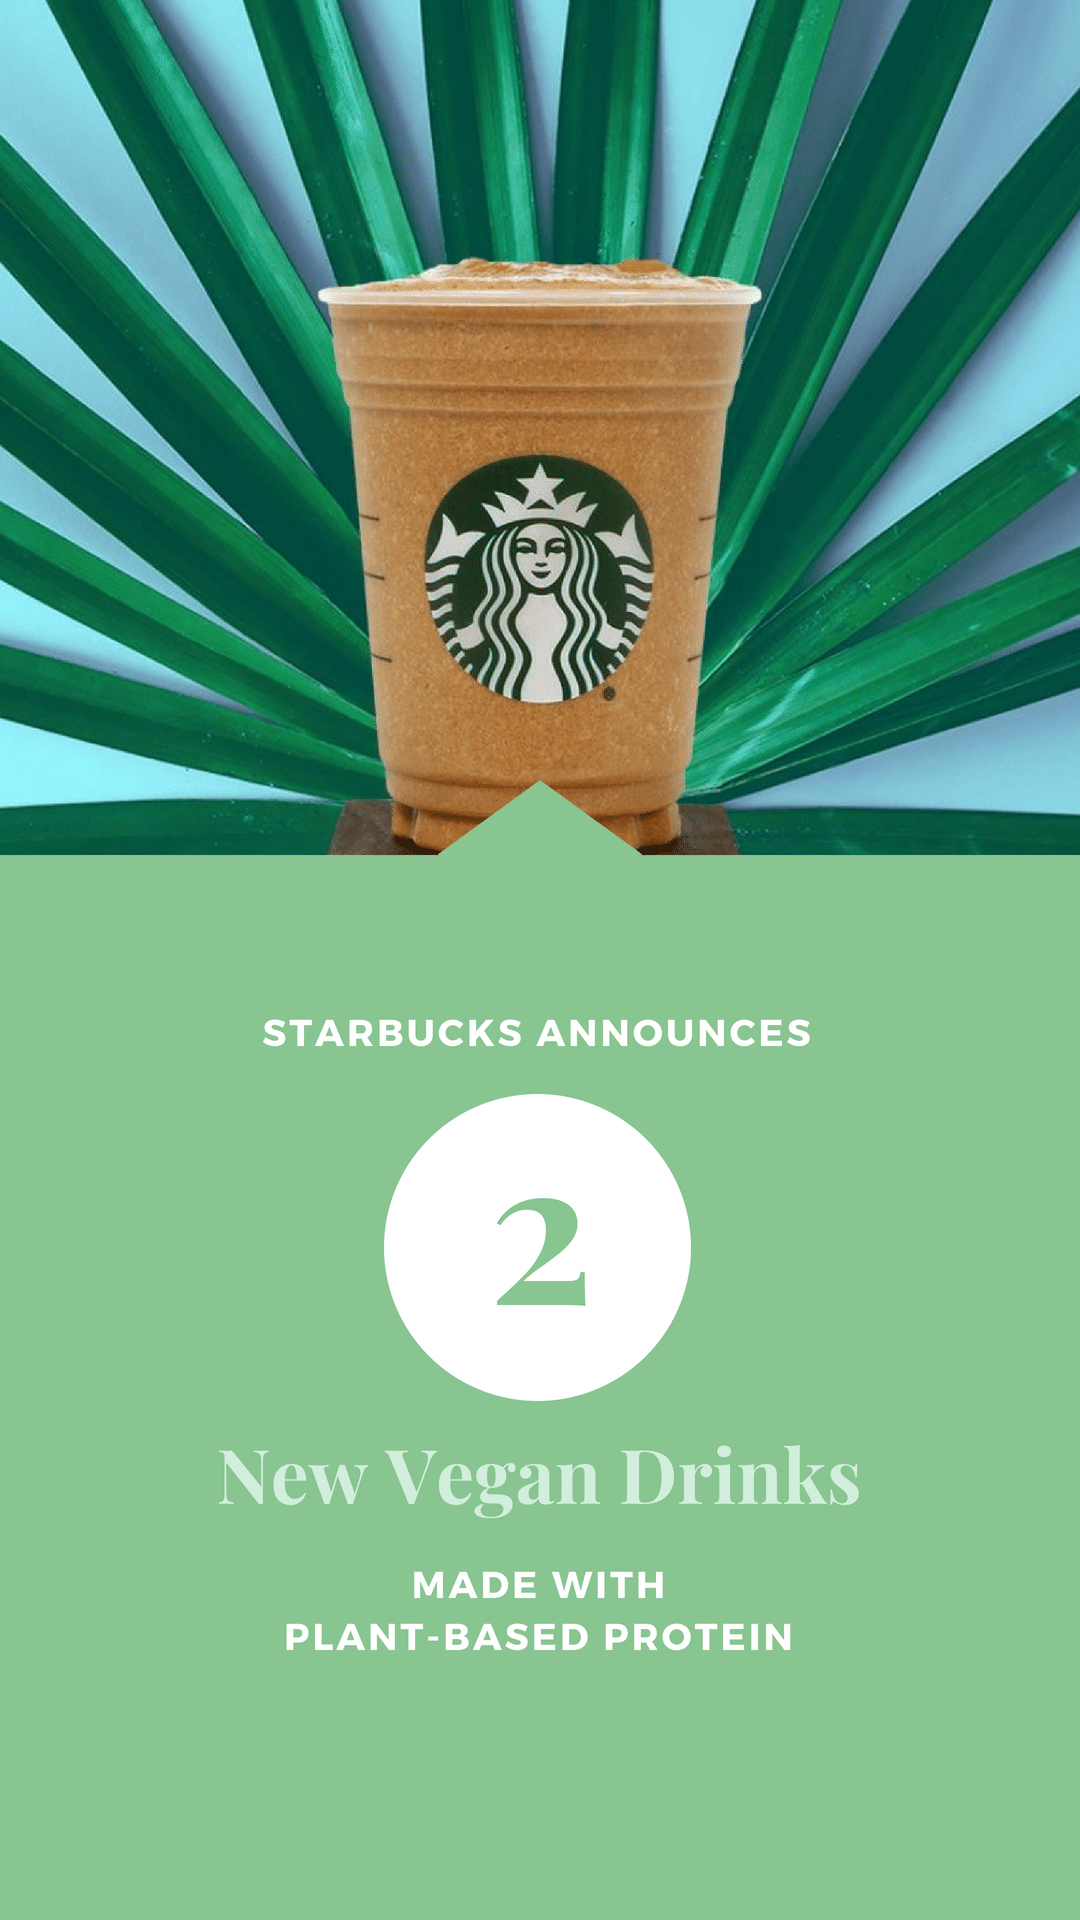 Starbucks Announces Two New Vegan Drinks Made With Plant-Based Protein